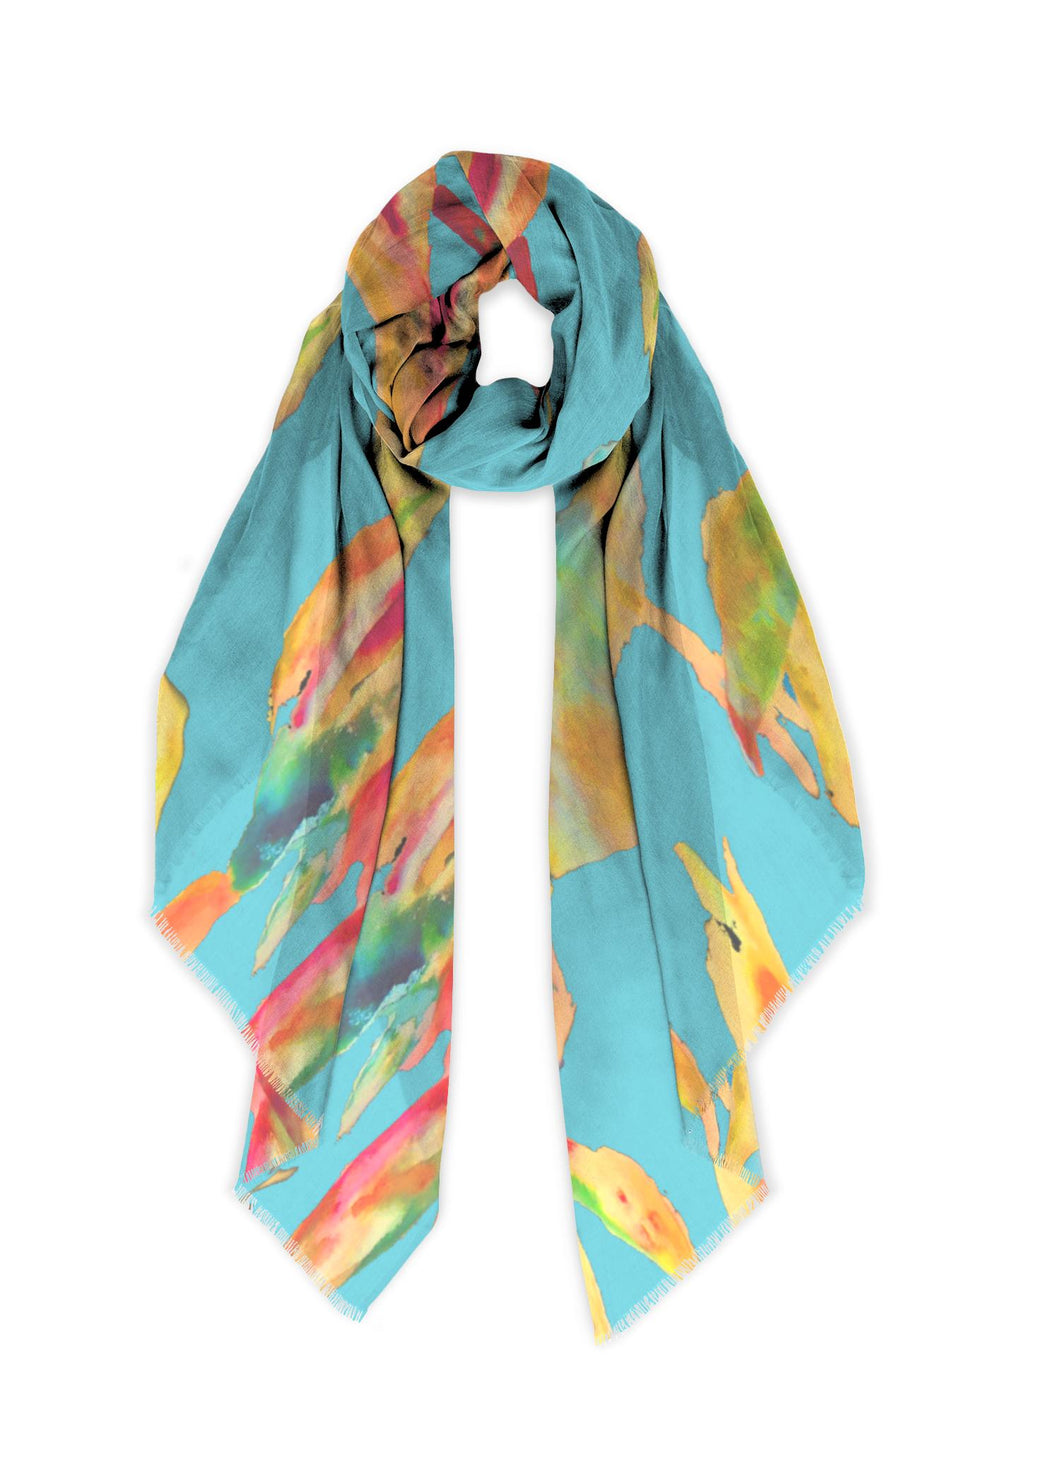 Bamboo at Noon Long Scarf - Modal - 45 of 75 Left